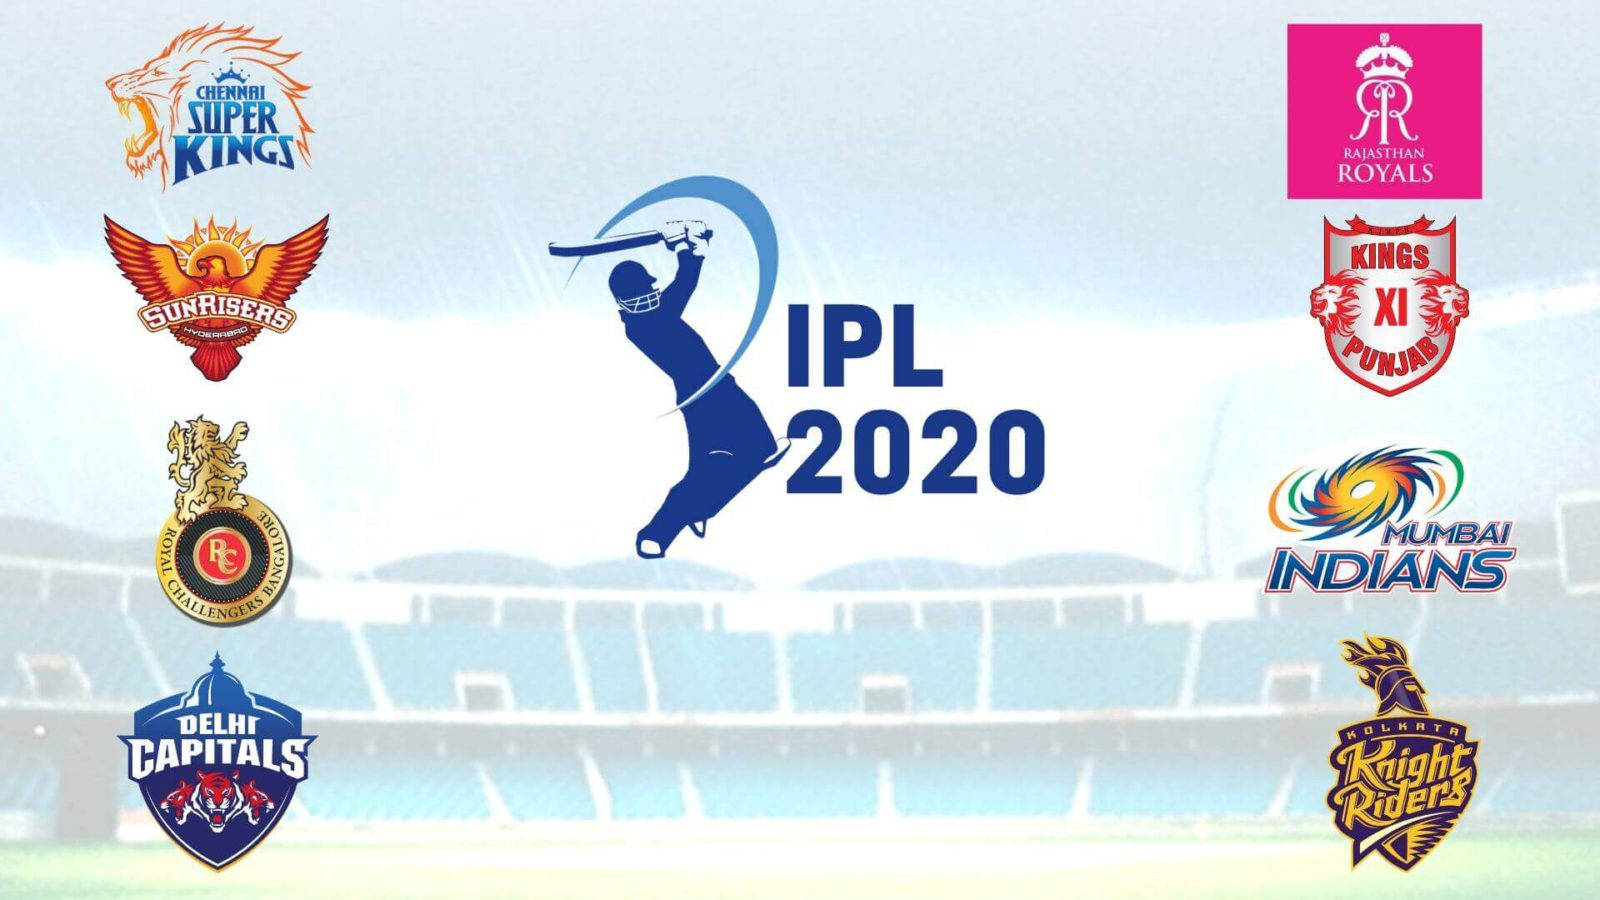 ipl 2020 schedule with venue